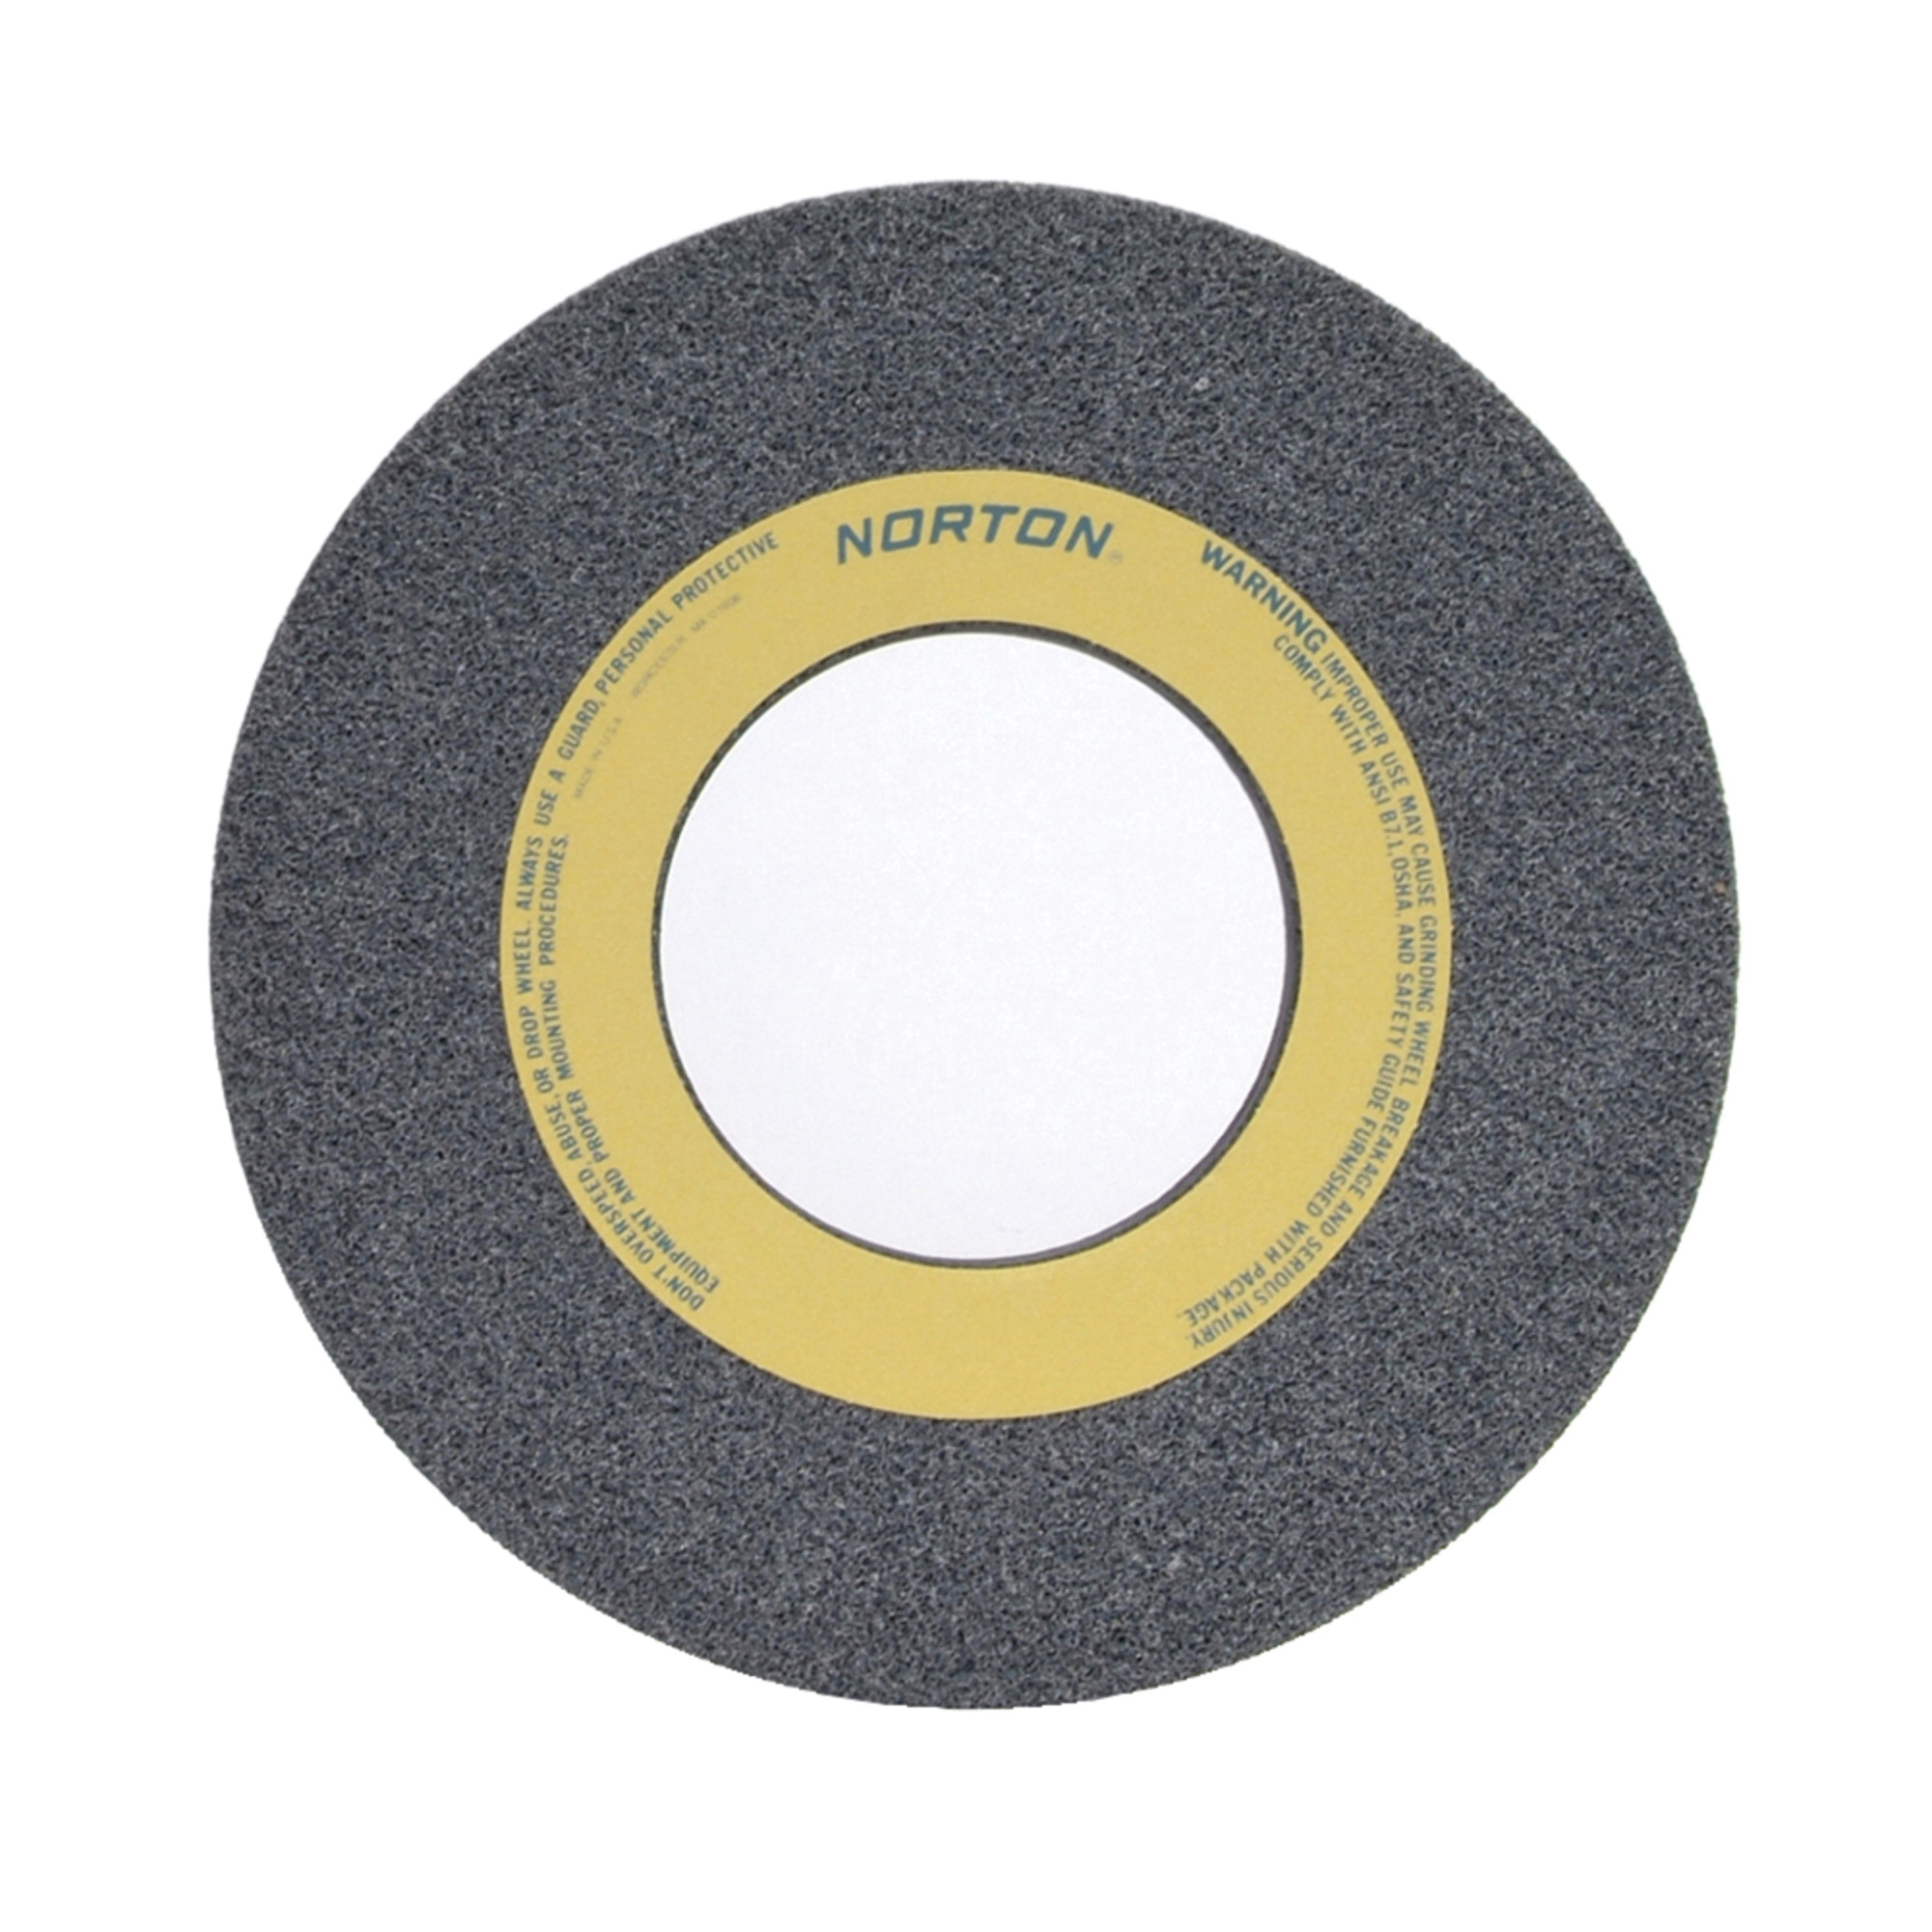 Norton® 66253364243 32A Straight Toolroom Wheel, 14 in Dia x 1-1/2 in THK, 5 in Center Hole, 46 Grit, Aluminum Oxide Abrasive